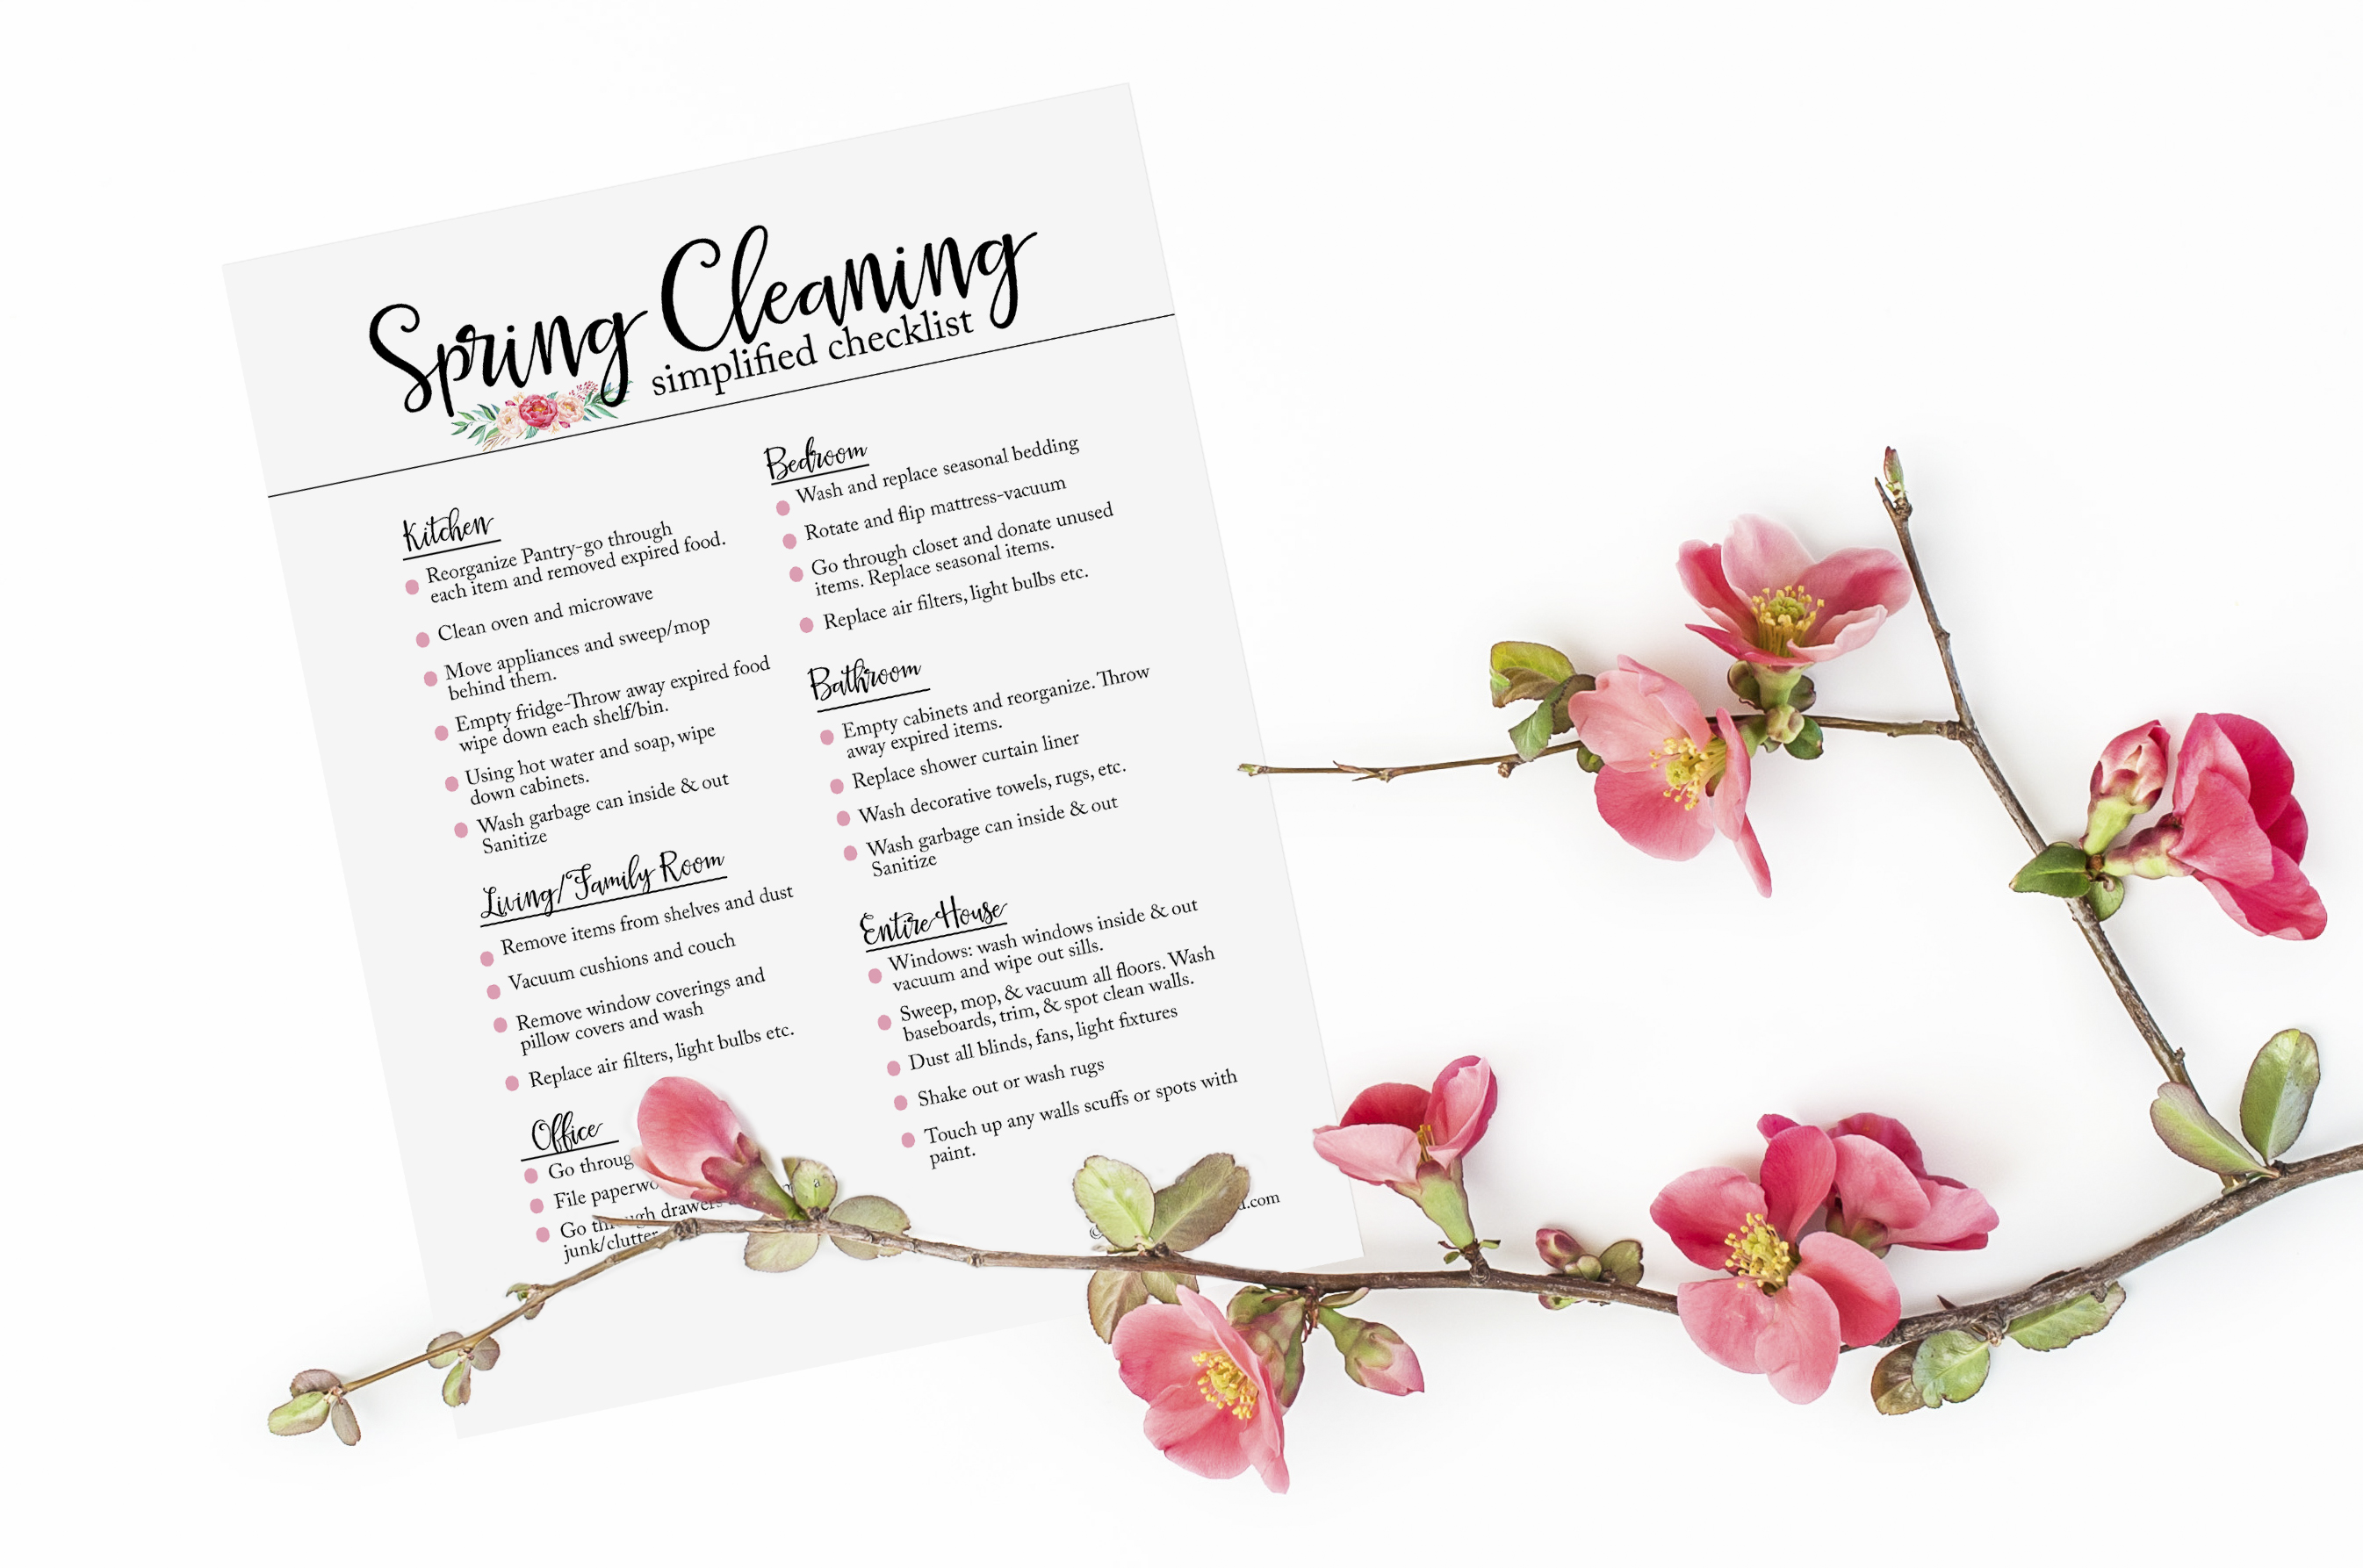 Spring cleaning checklist by Blooming Homestead